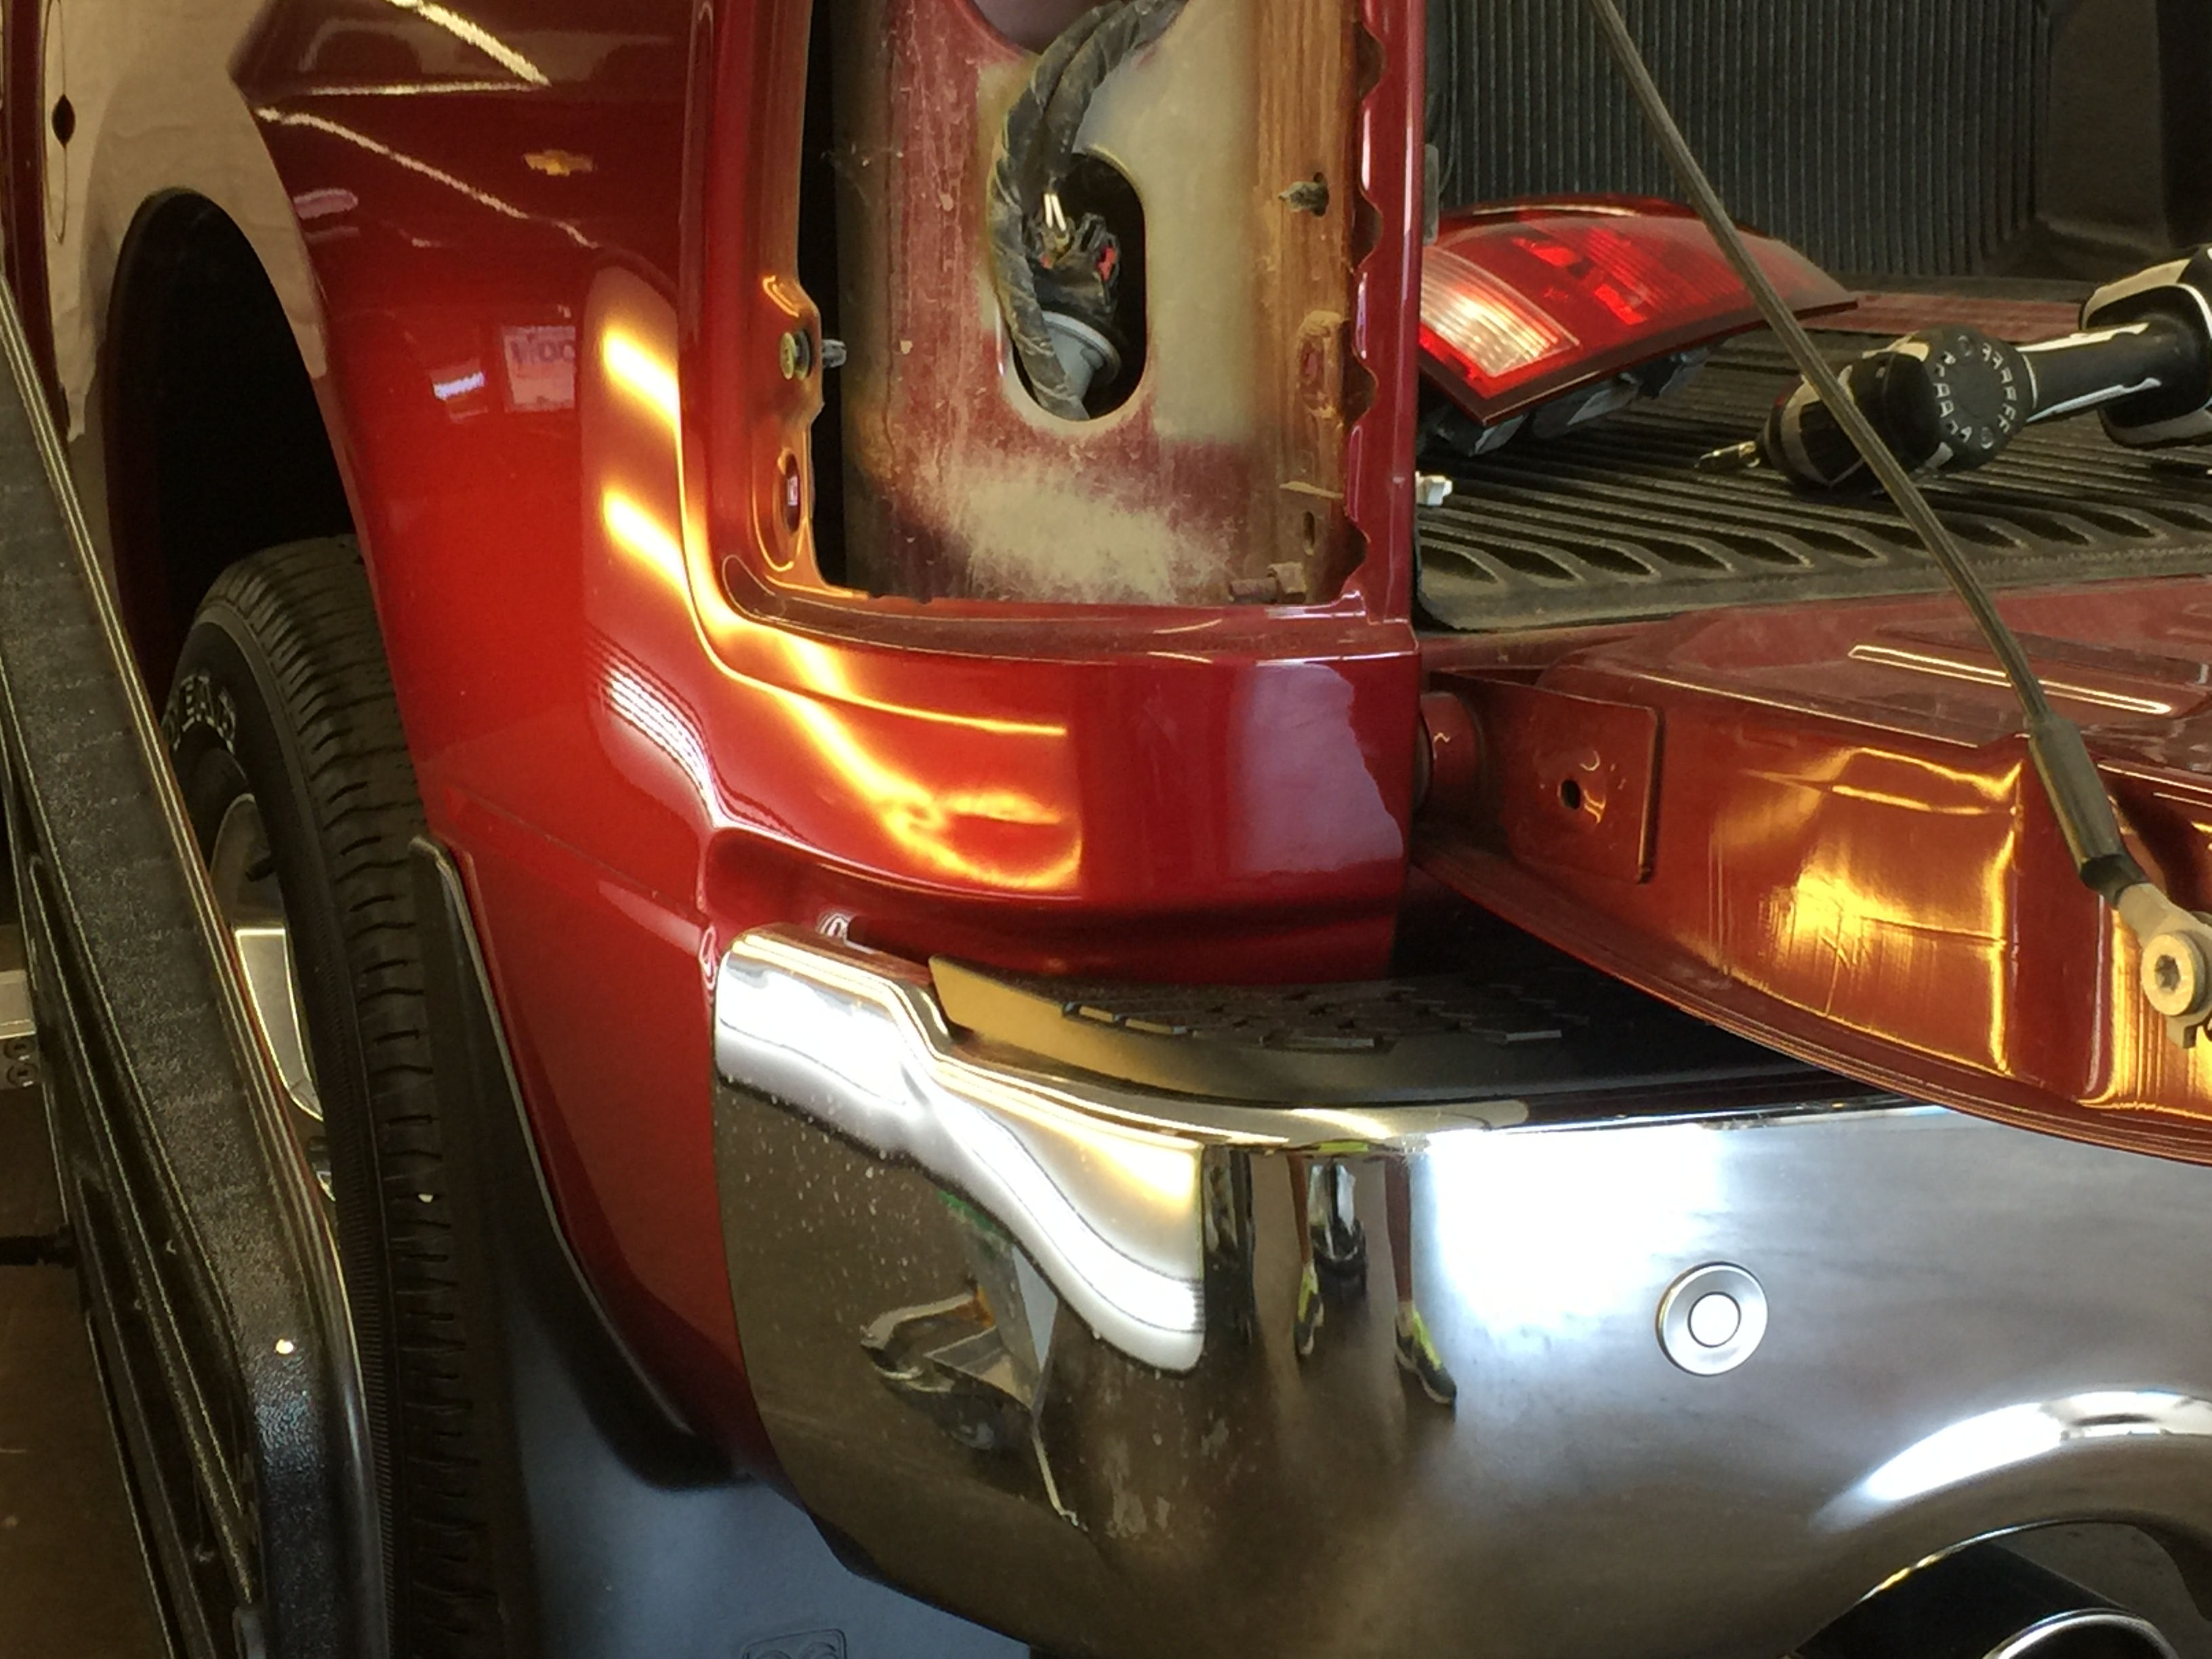 2015 Dodge Ram Dent Removal, Springfield, IL http://217dent.com Bedside Paintless Dent Repair, Mobile dent removal